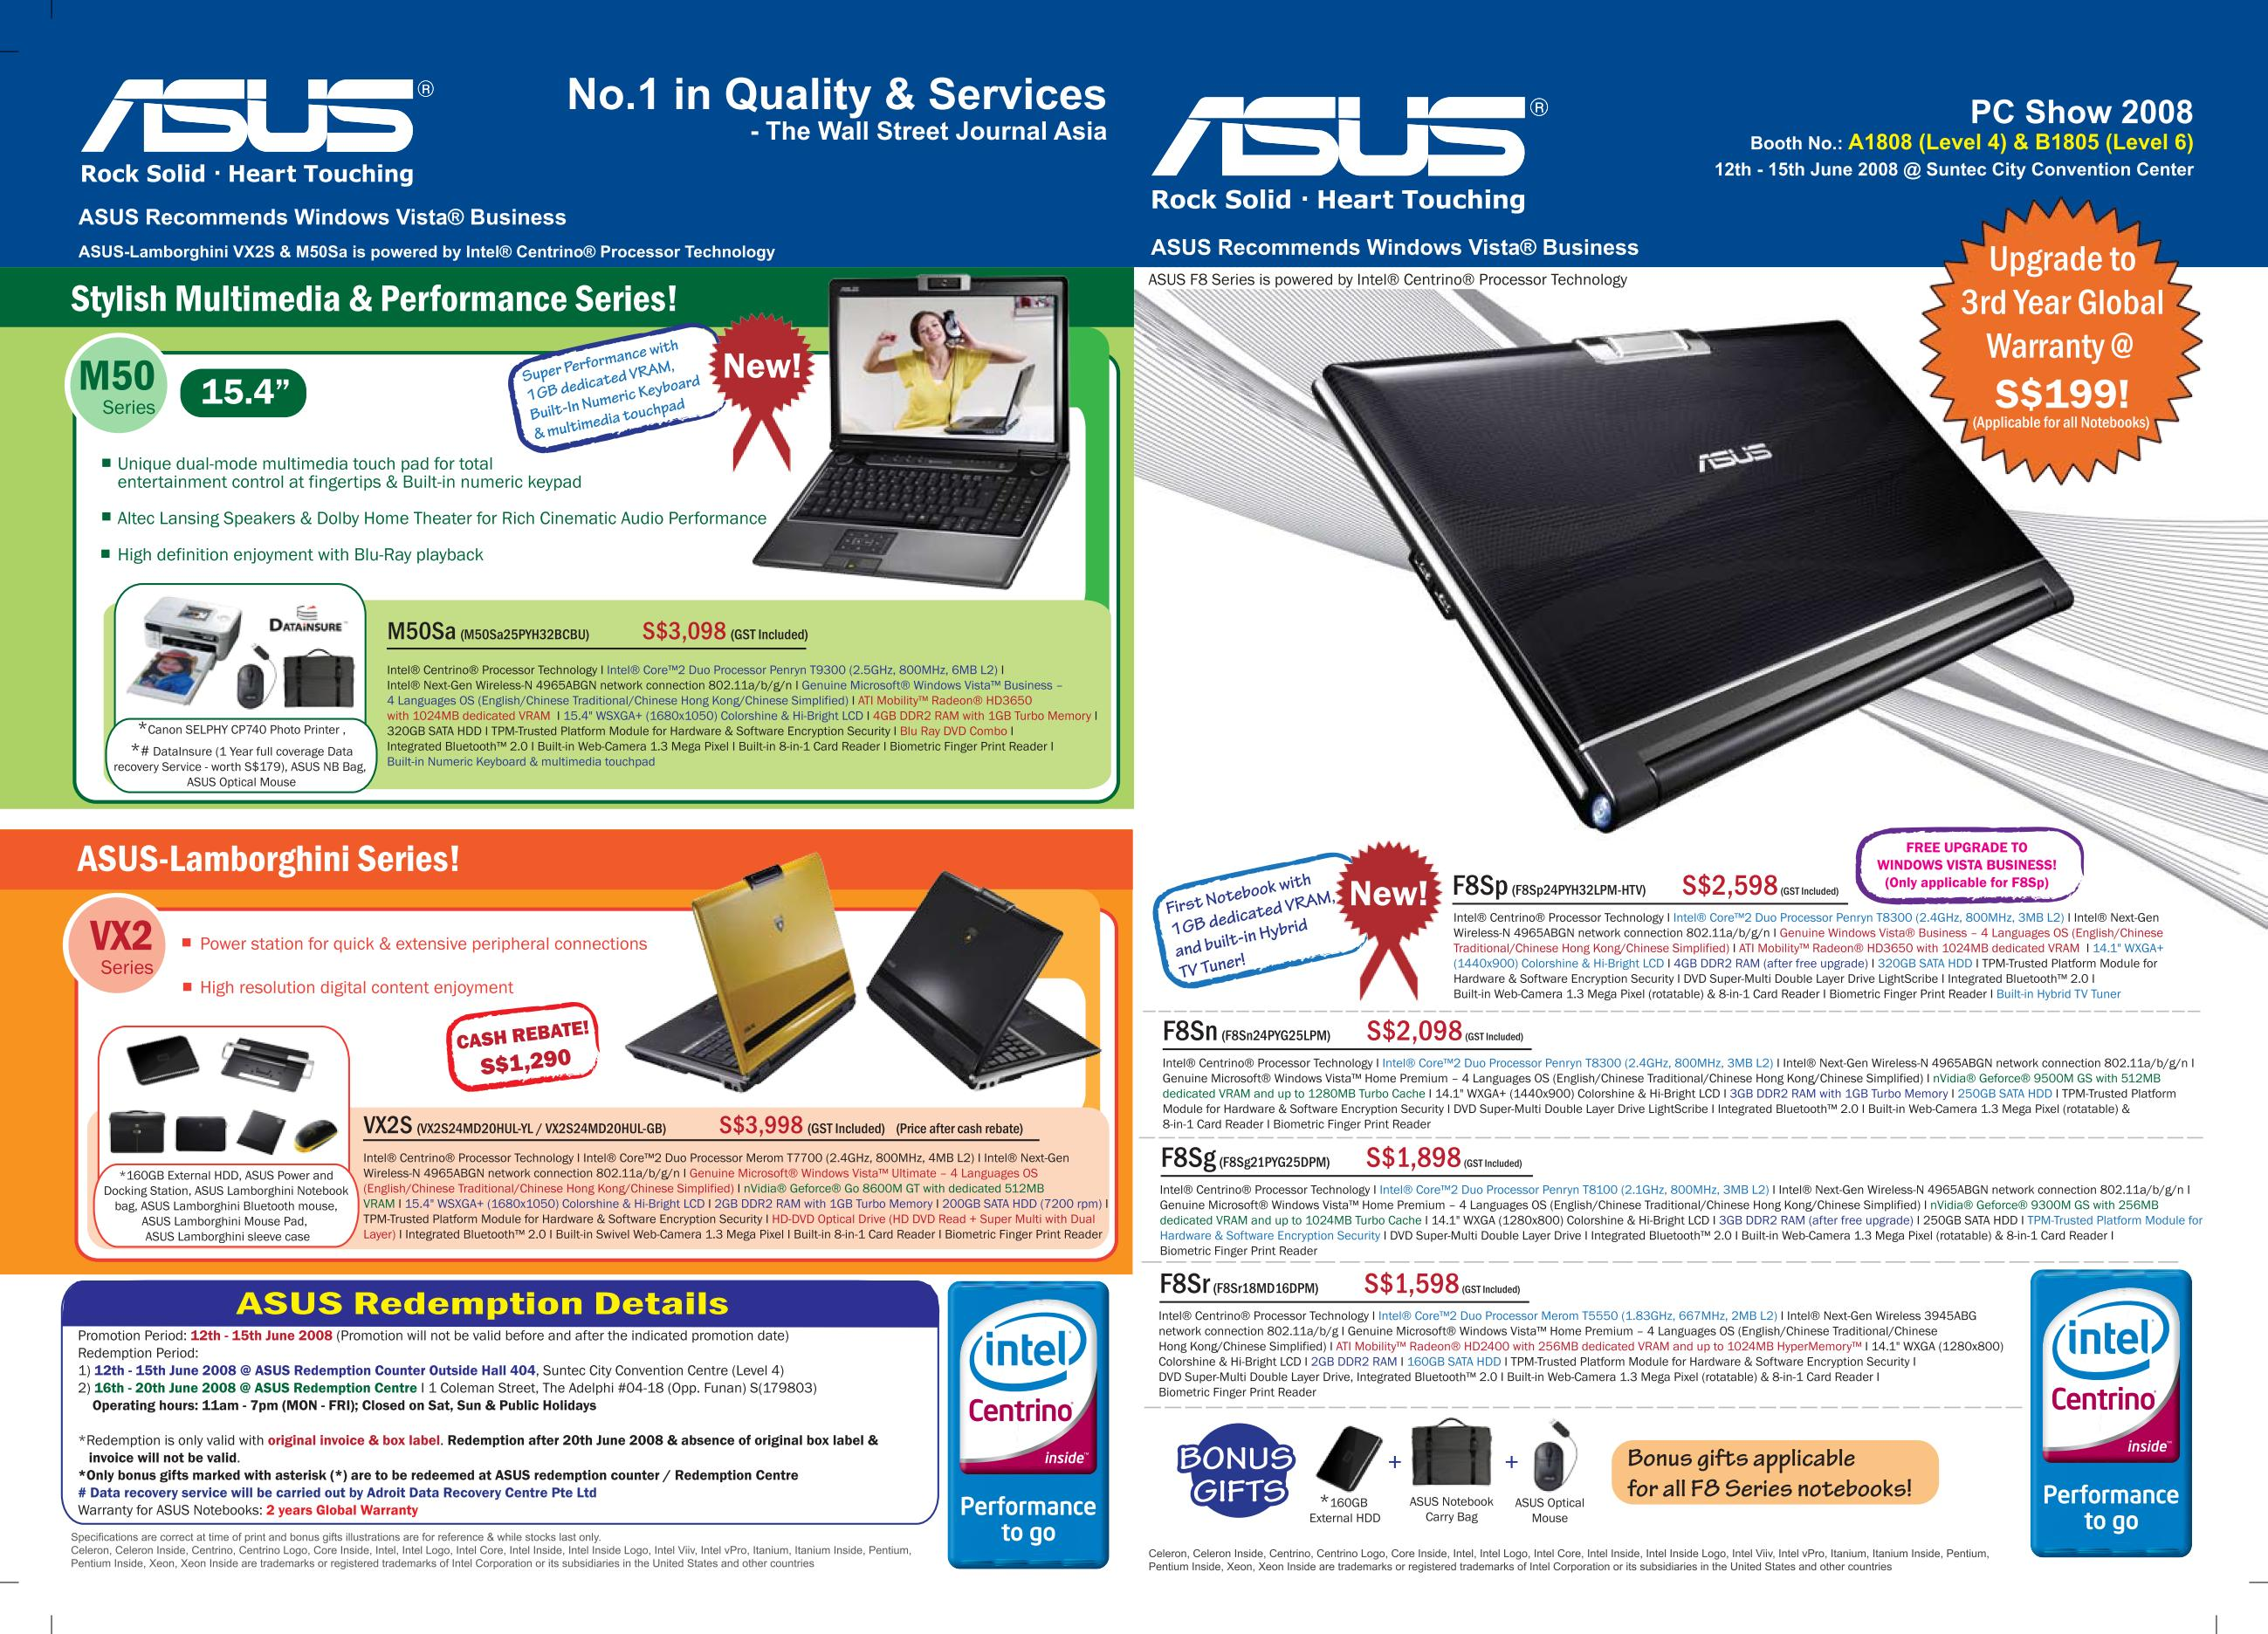 PC Show 2008 price list image brochure of Asus Notebooks Front.pdf 01